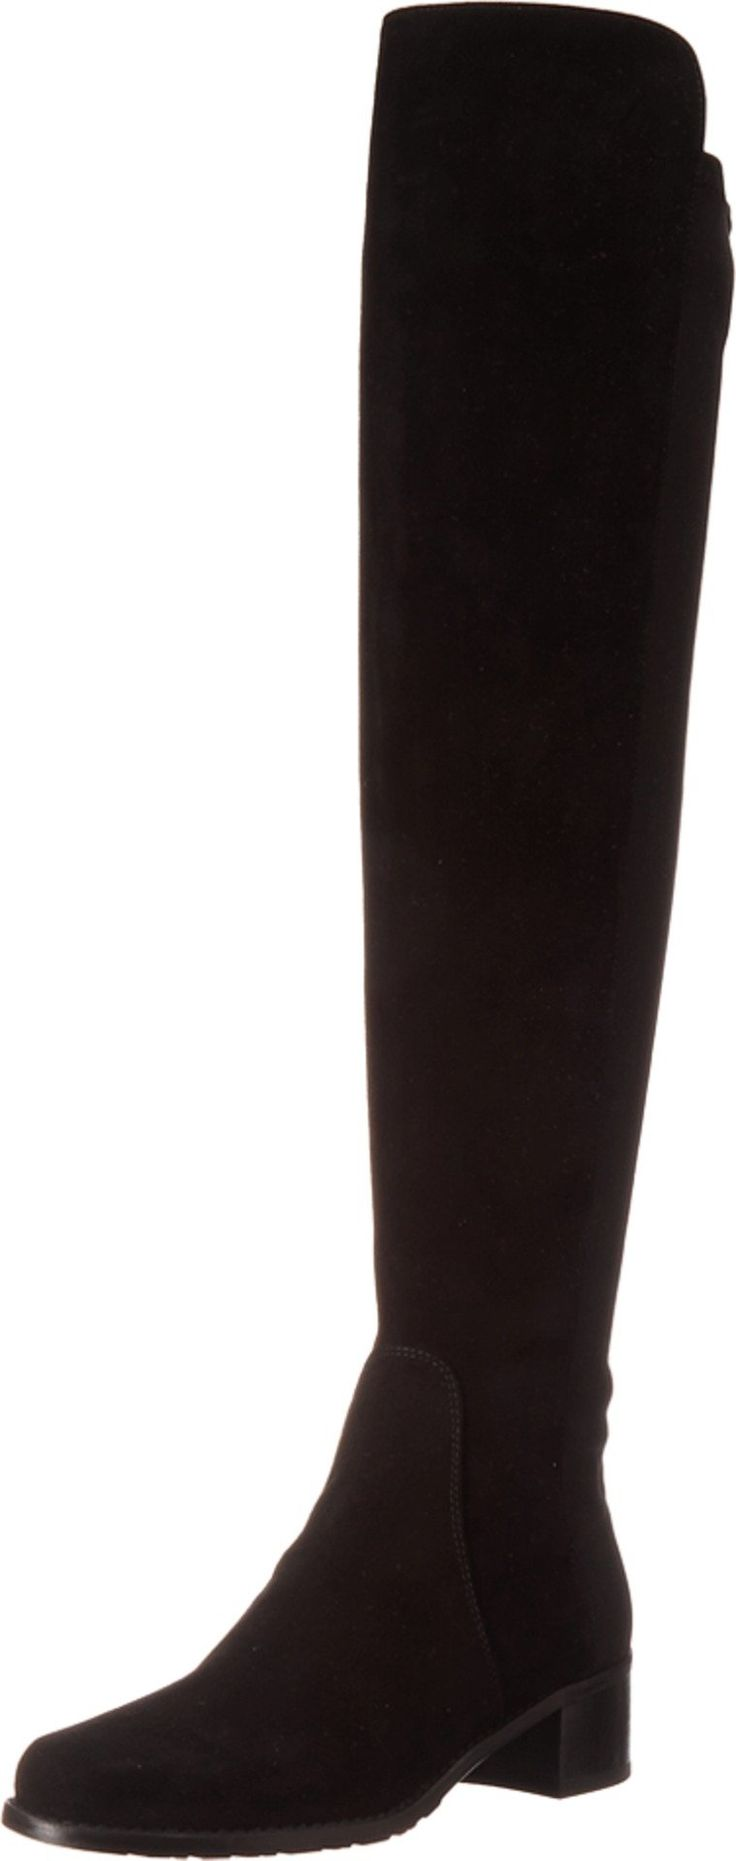 Stuart Weitzman Women's Reserve Black Suede Boot 6.5 W. Made in USA or Imported.